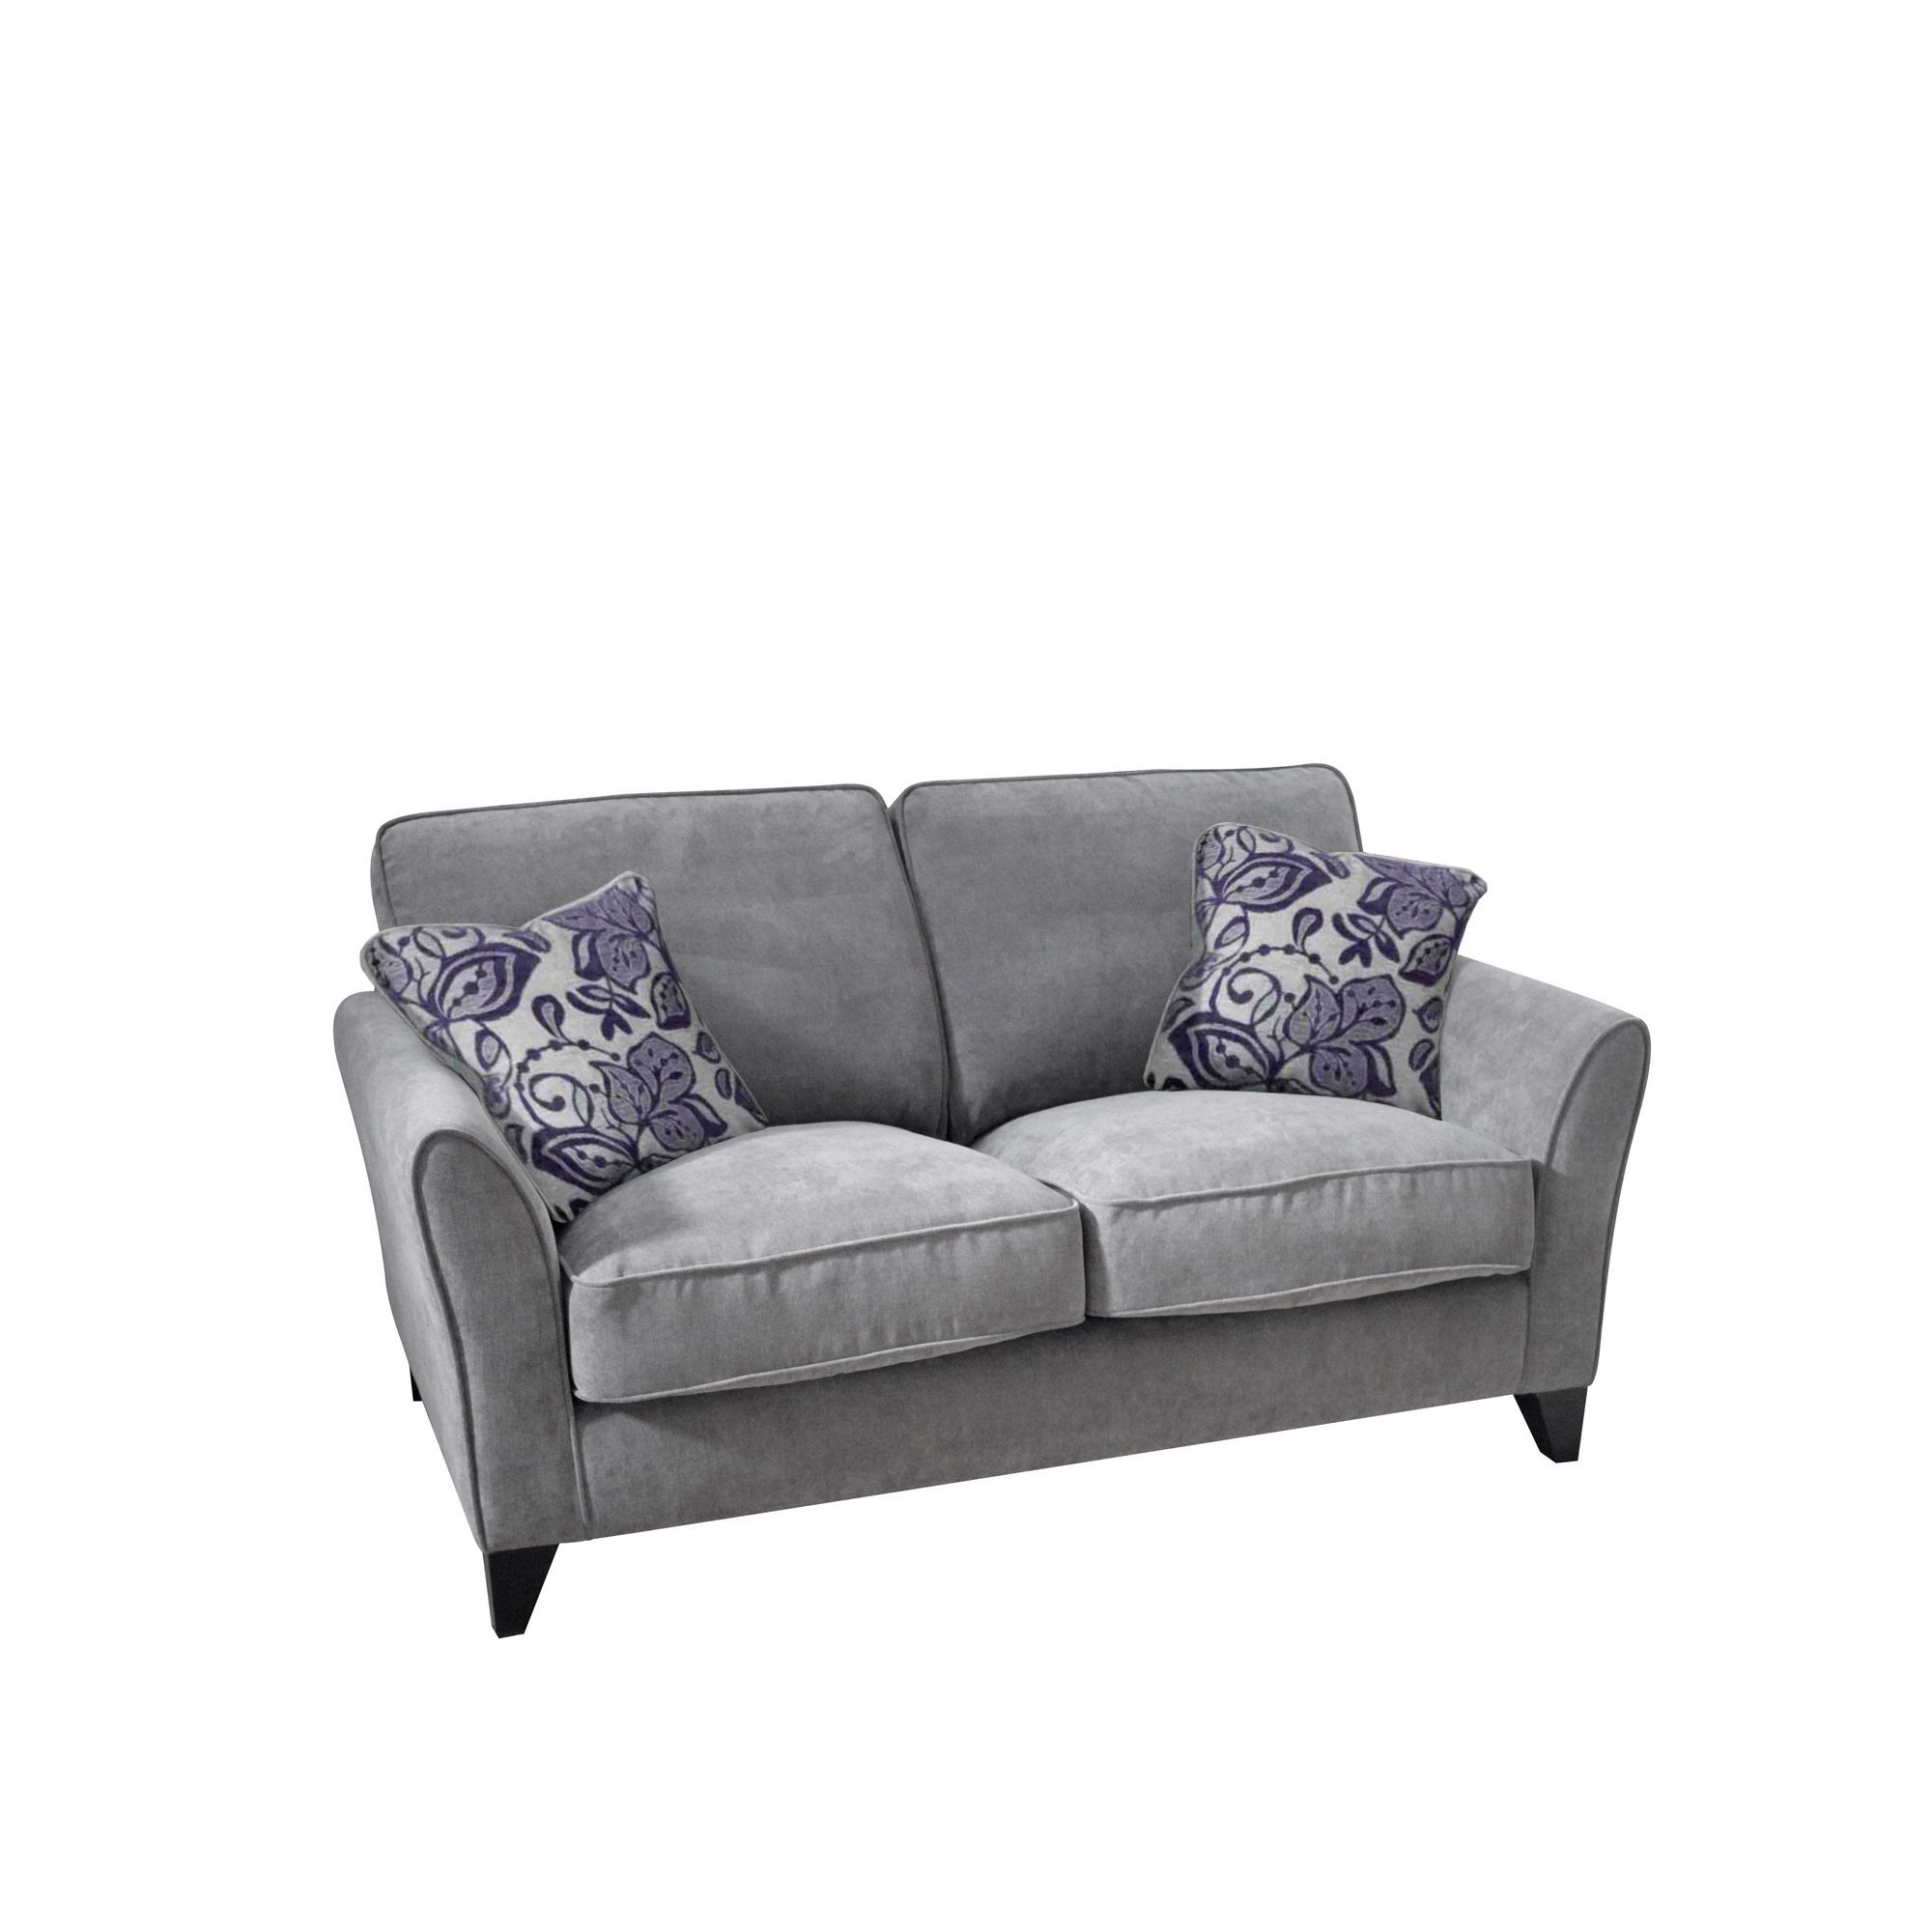 Cookes Collection Lakeland 2 Seater Sofa - All Sofas - Cookes ...